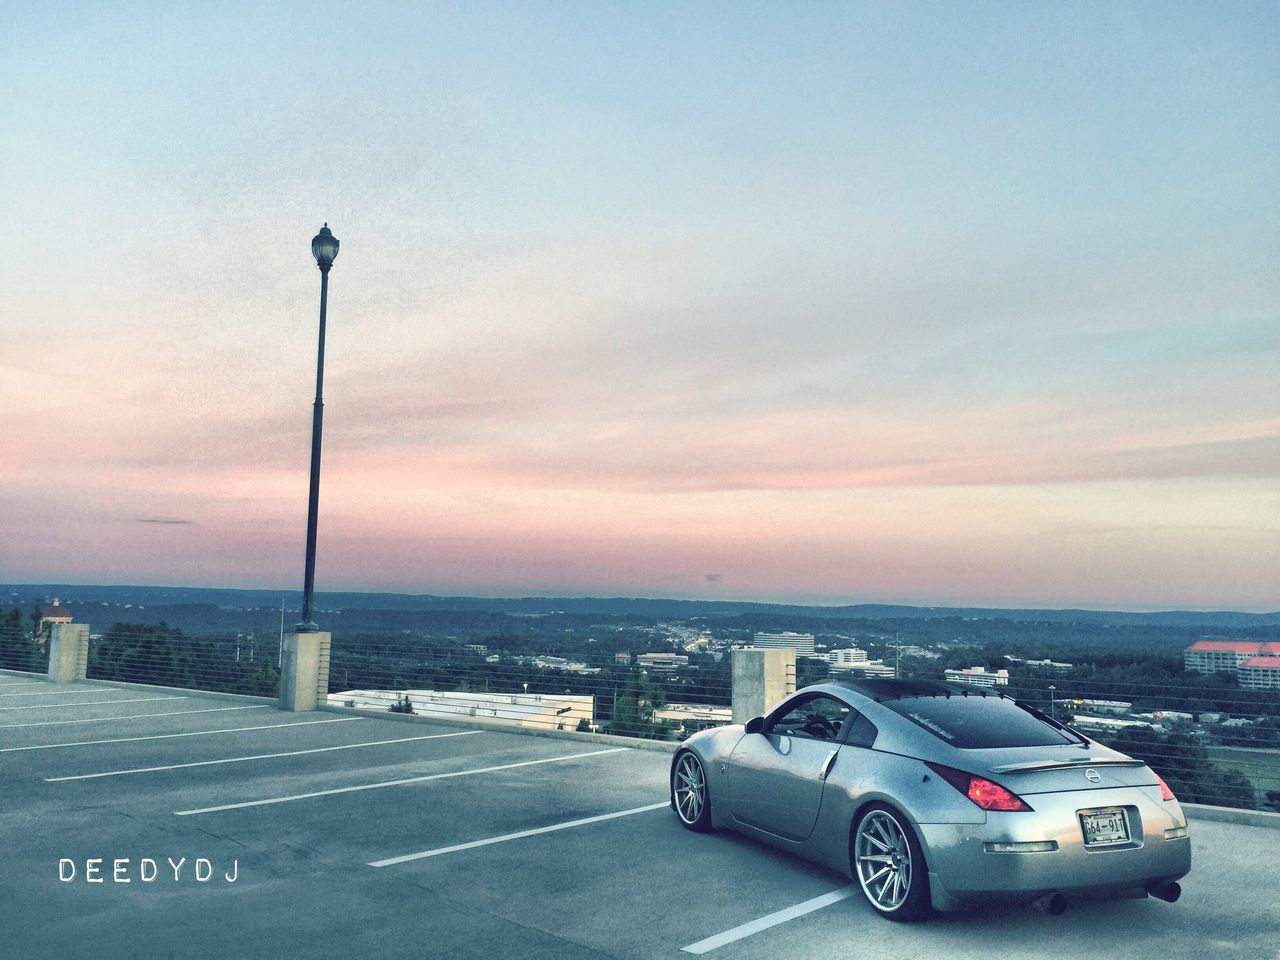 transportation, car, road, no people, street light, mode of transport, sky, built structure, land vehicle, outdoors, day, architecture, horizon over water, nature